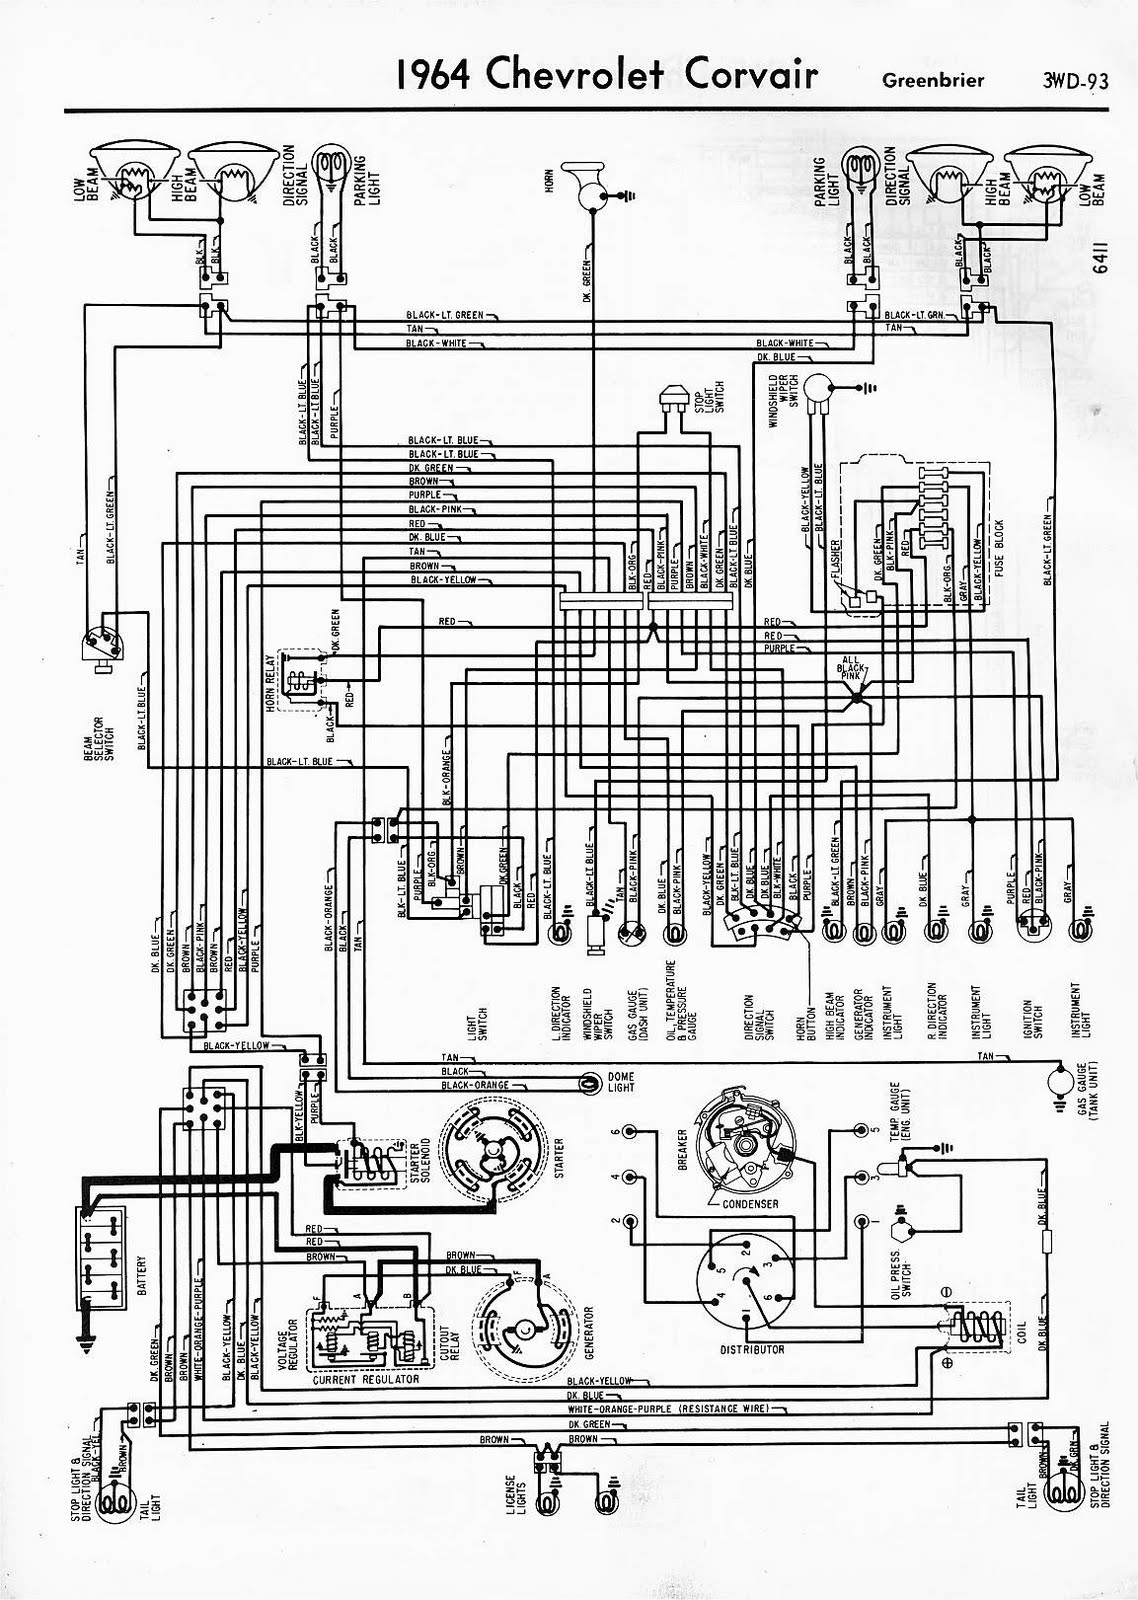 Johnson 115 Hp Outboard Motor Wiring Diagram 1195 | Wiring ... on